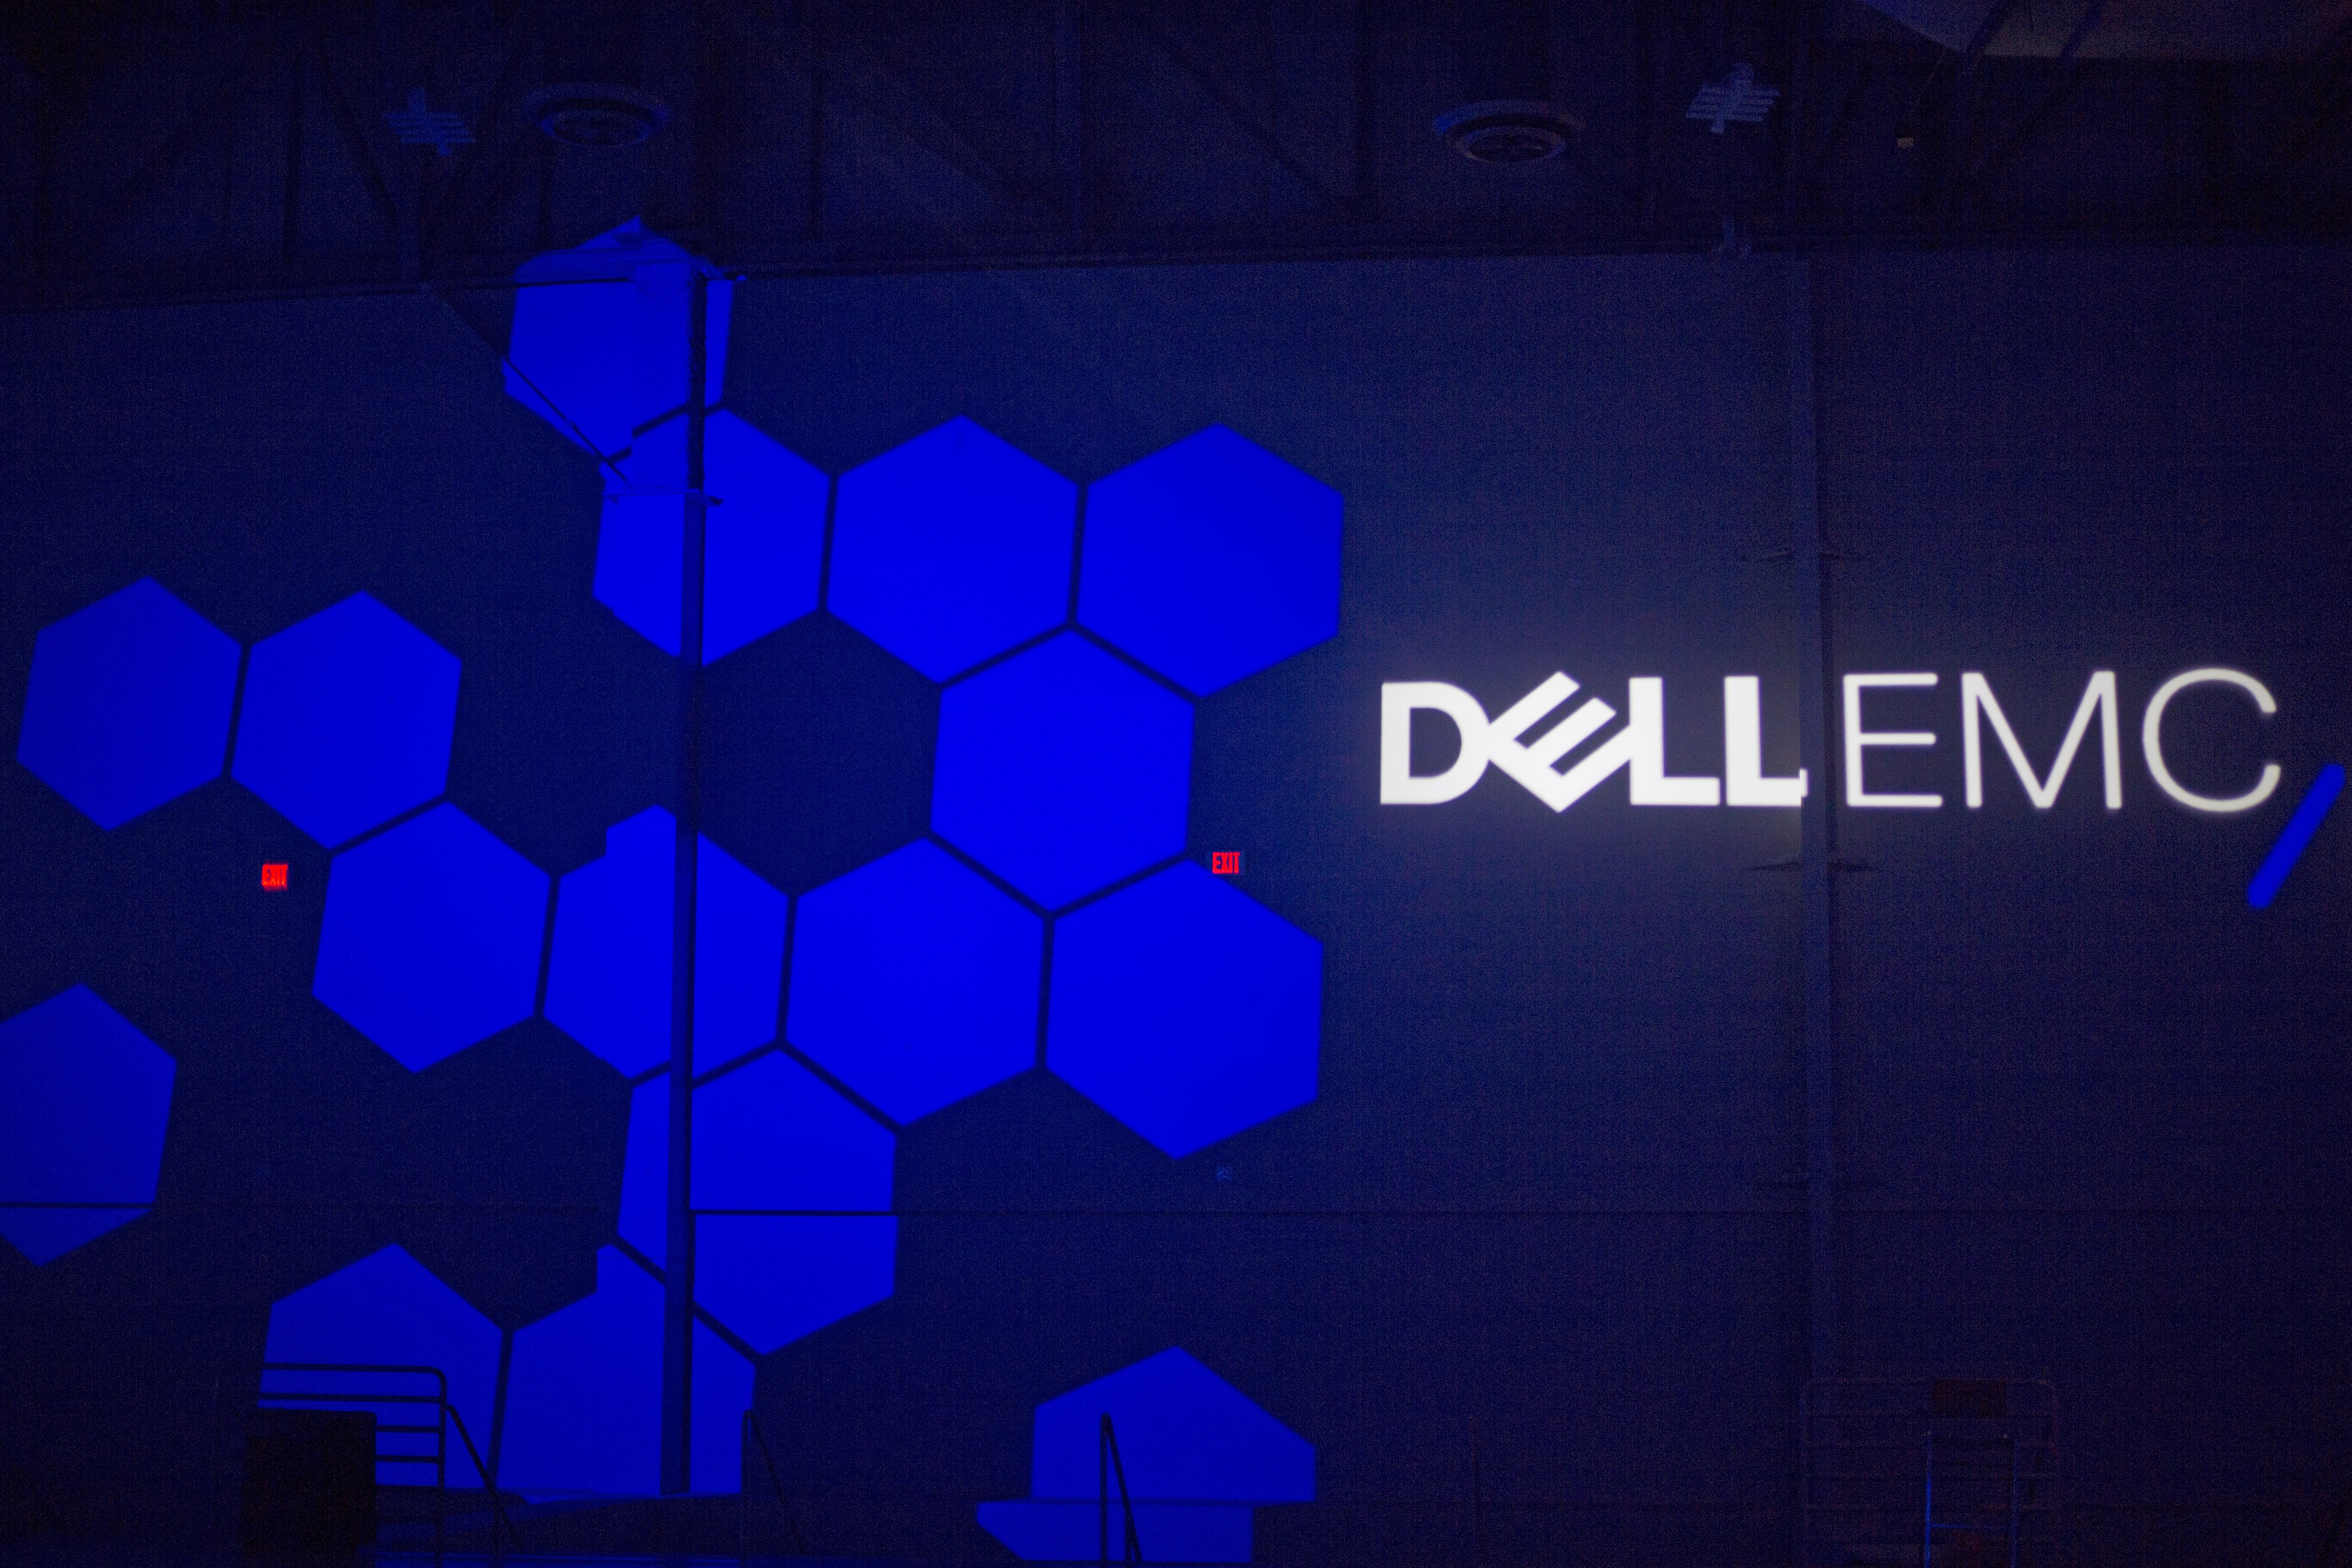 Critical vulnerabilities found in Dell EMC, VMware storage.